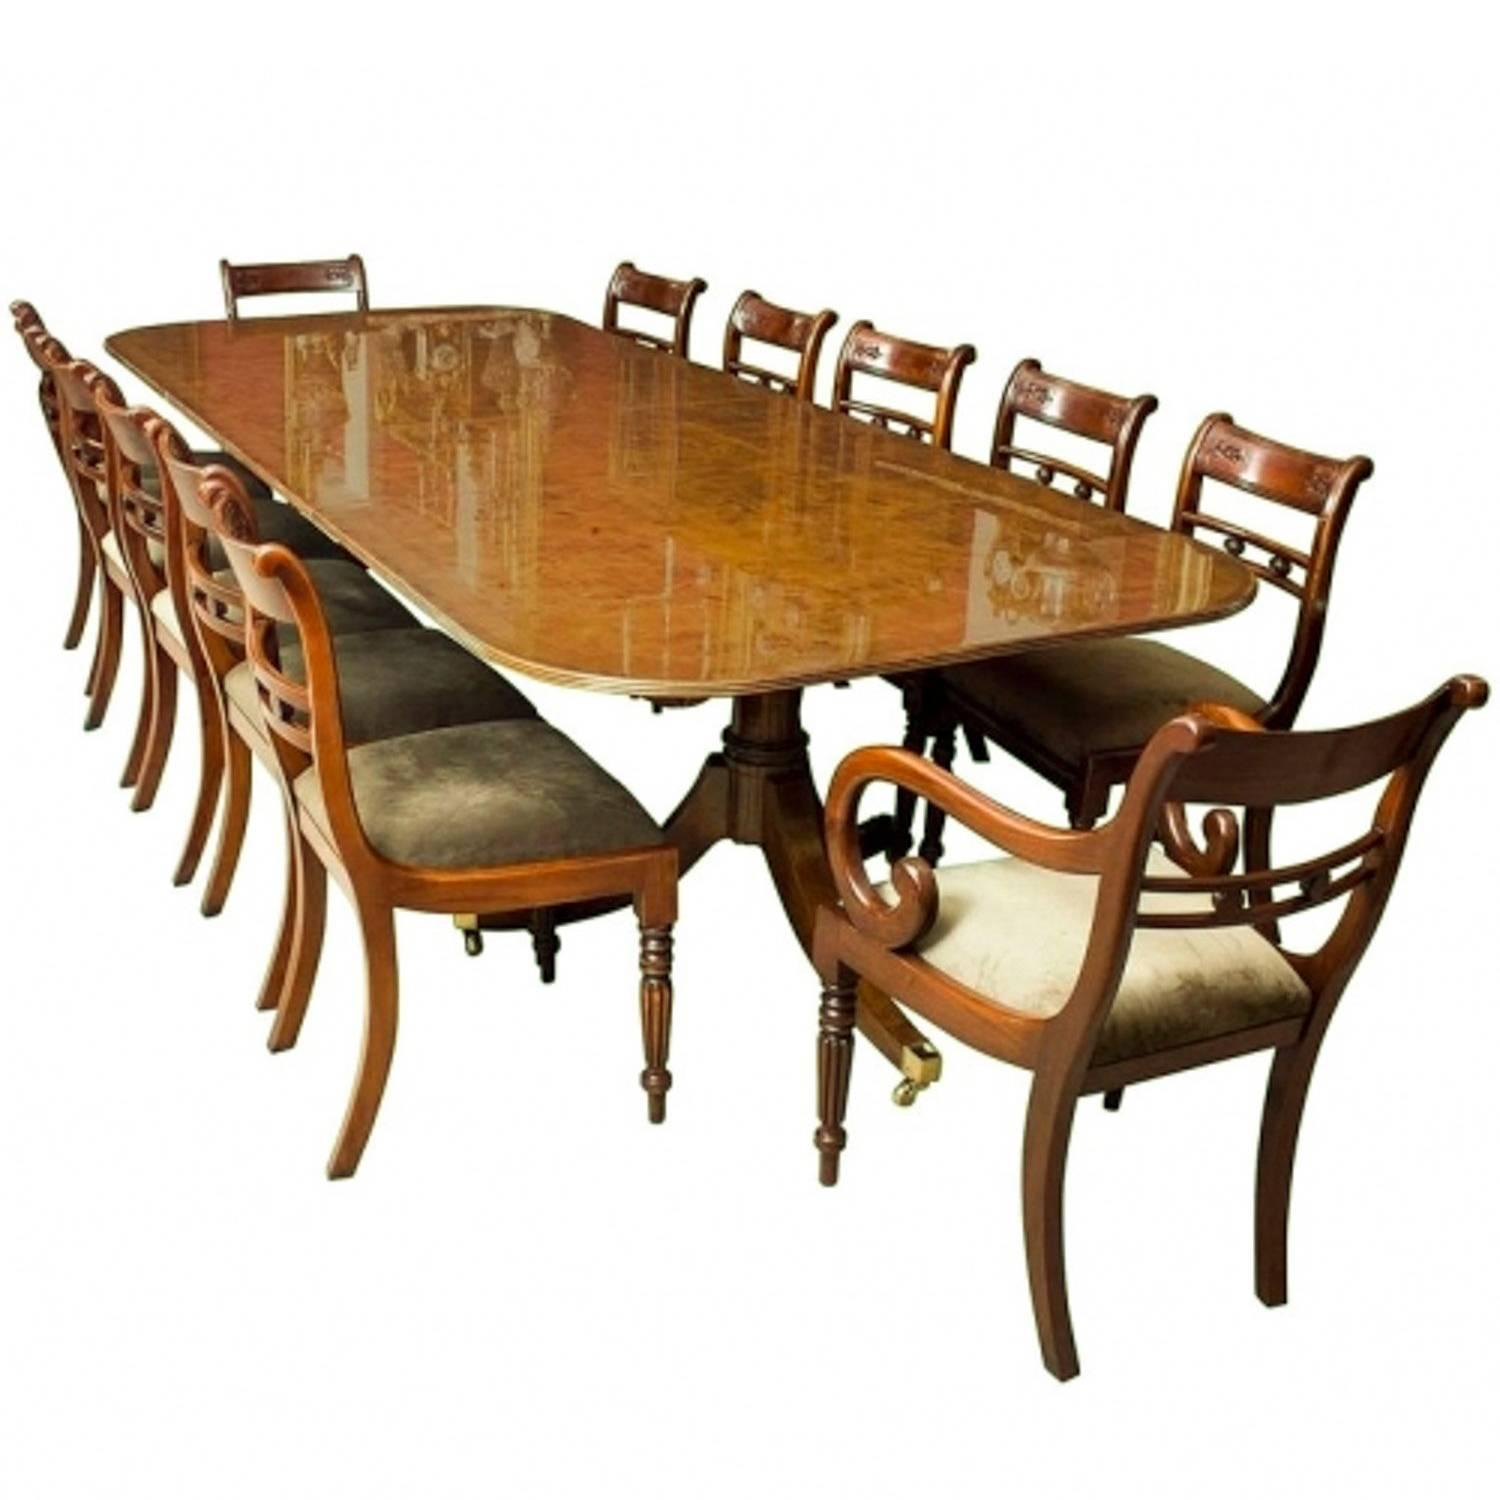 Bespoke Burr Walnut Regency Style Dining Table 12 Tulip Back Chairs For Sale Regency Style Furniture G13